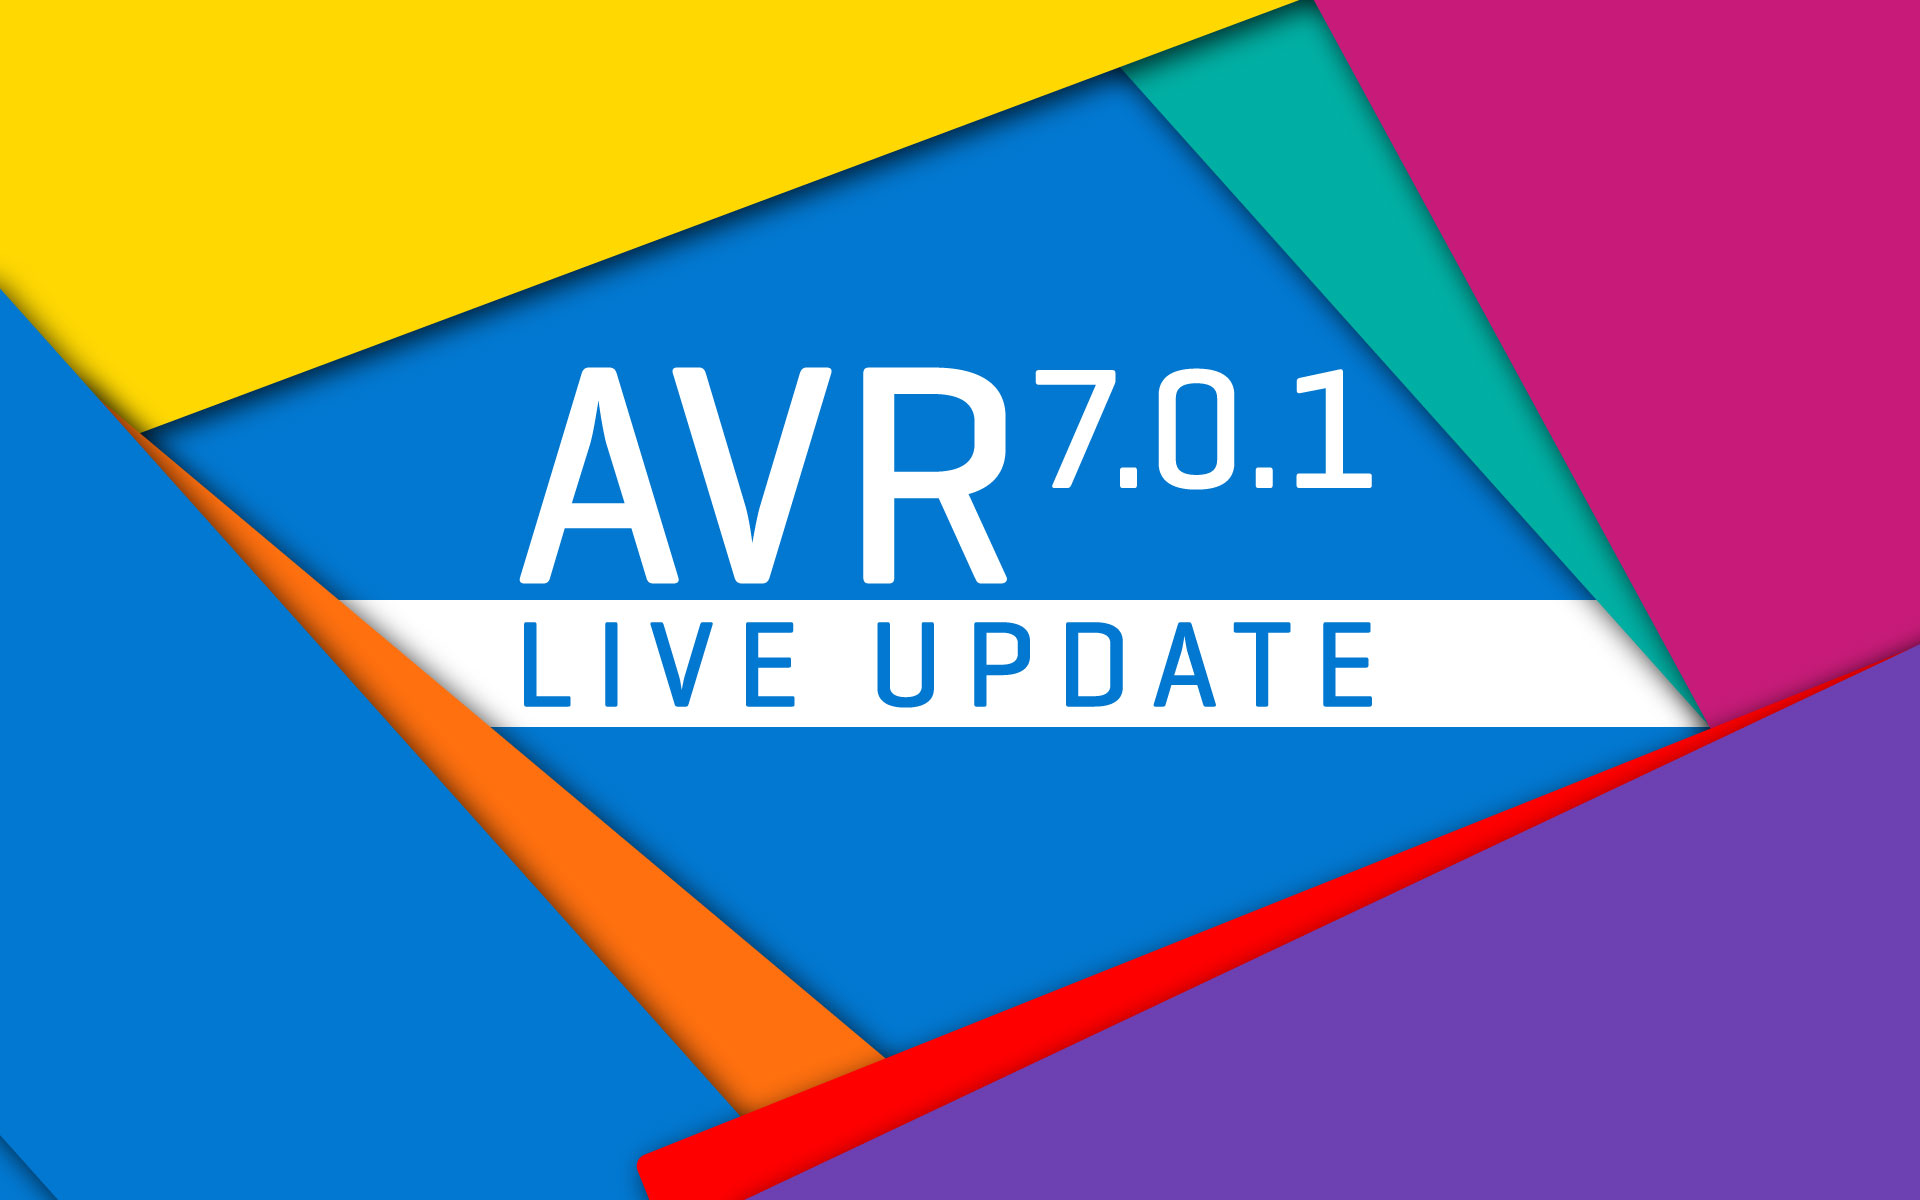 AVR compilers update - version 7.0.1